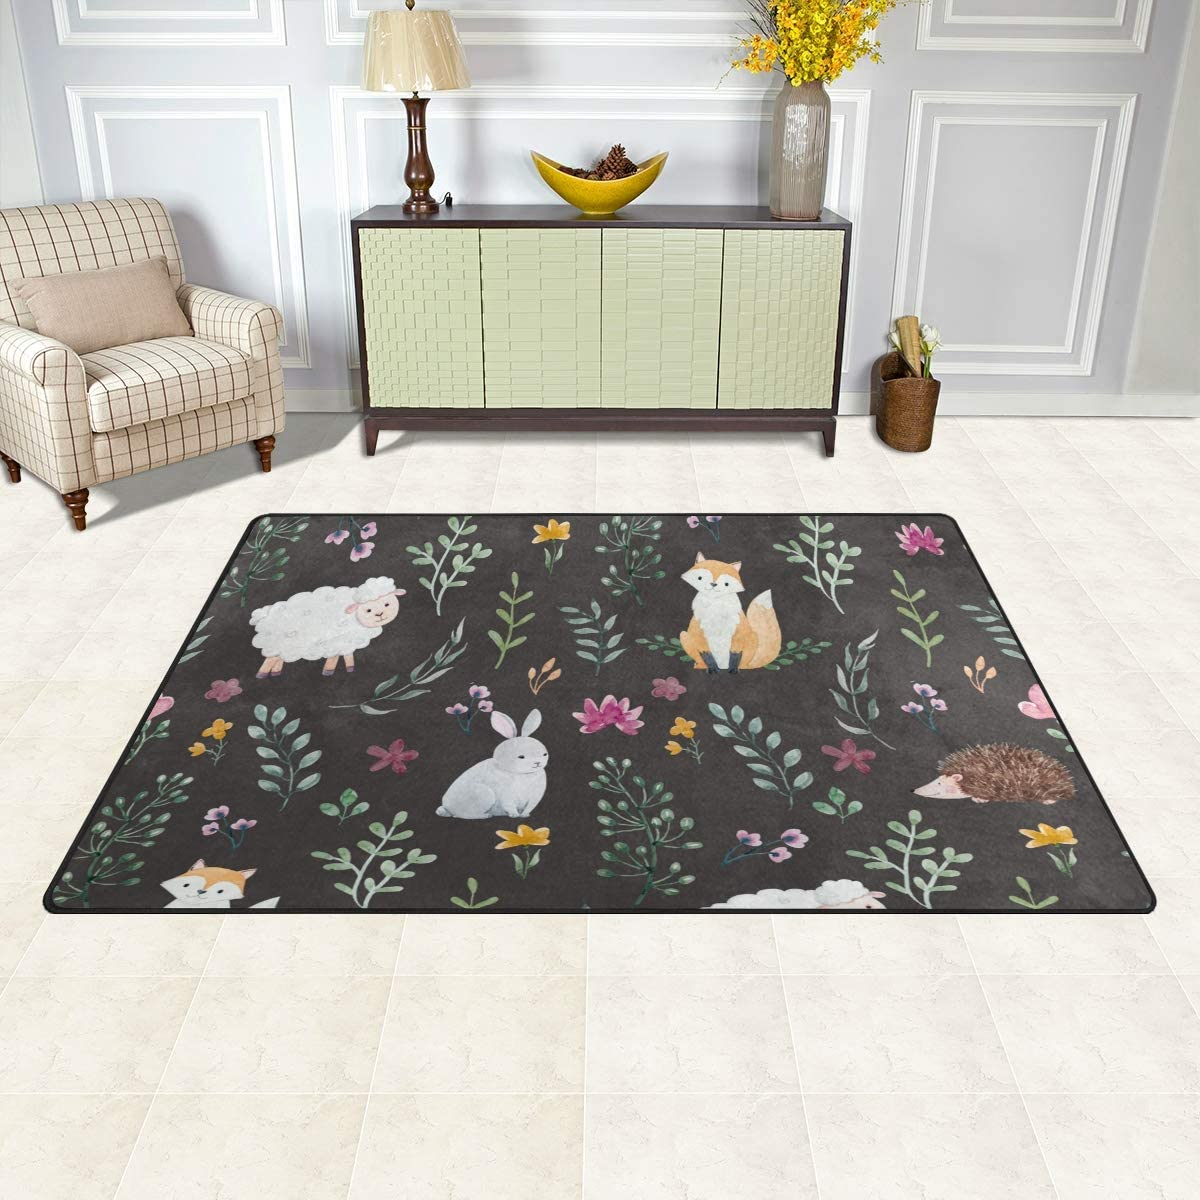 Vantaso Soft Foam Nursery Area Rugs Forest Spring Flowers Rabbit 31x20 inch Play Mats for Kids Playing Room Living Room Door Mat